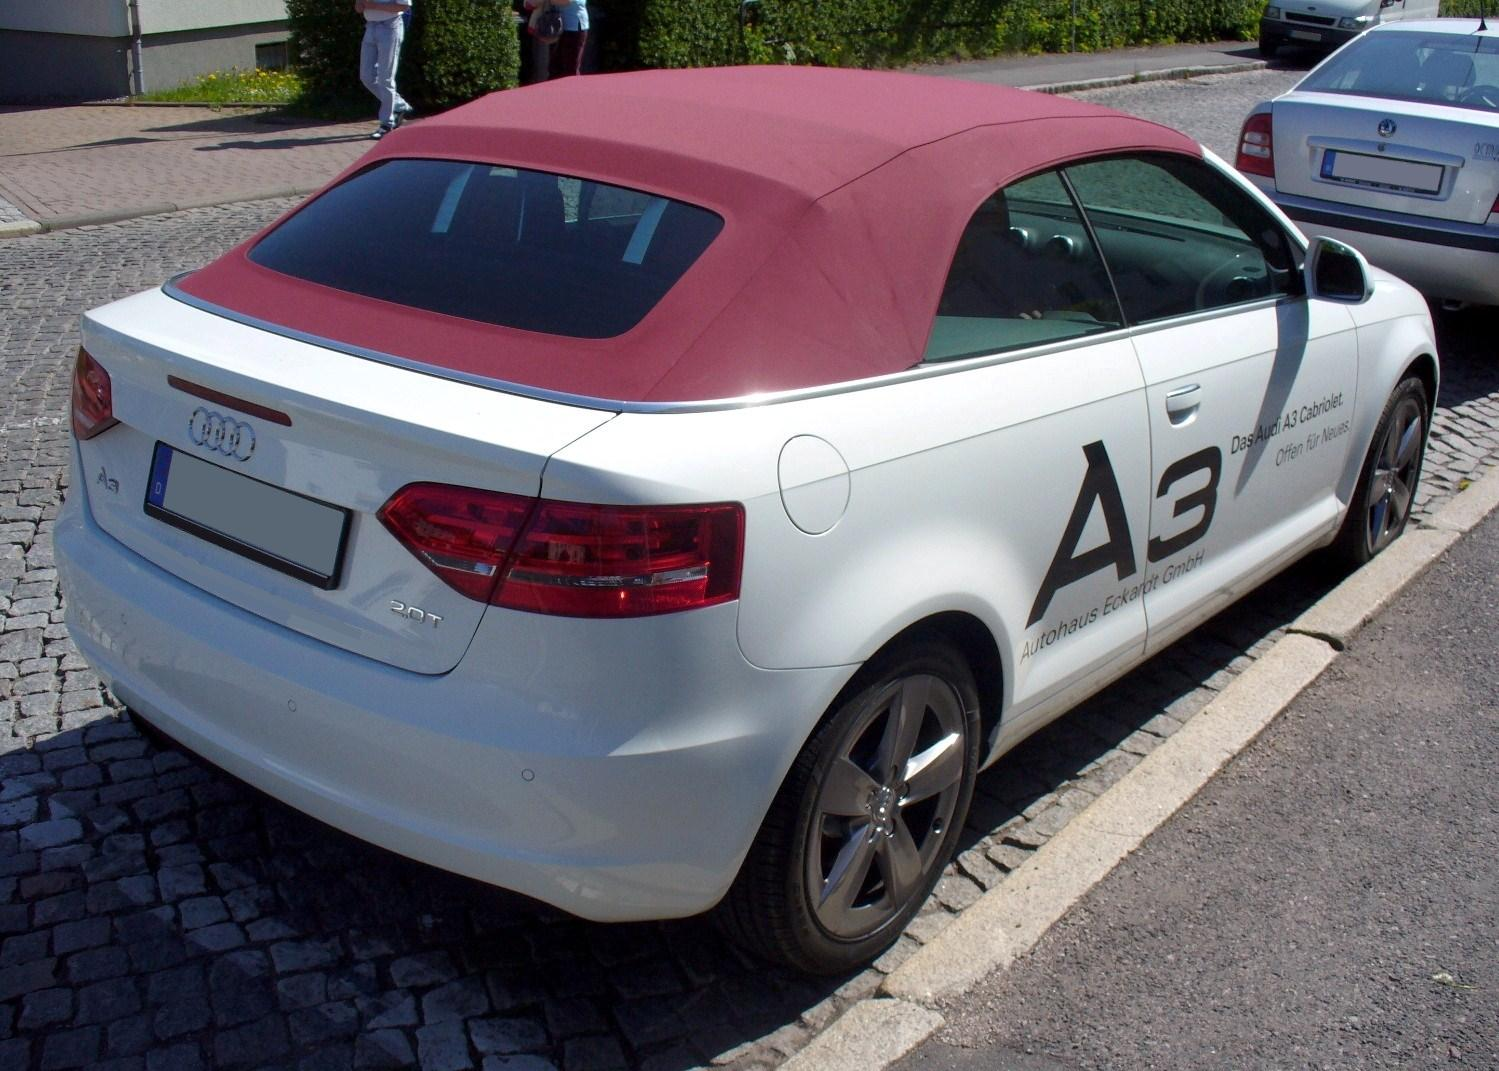 File Audi A3 Cabriolet 2 0t Heck Jpg Wikimedia Commons